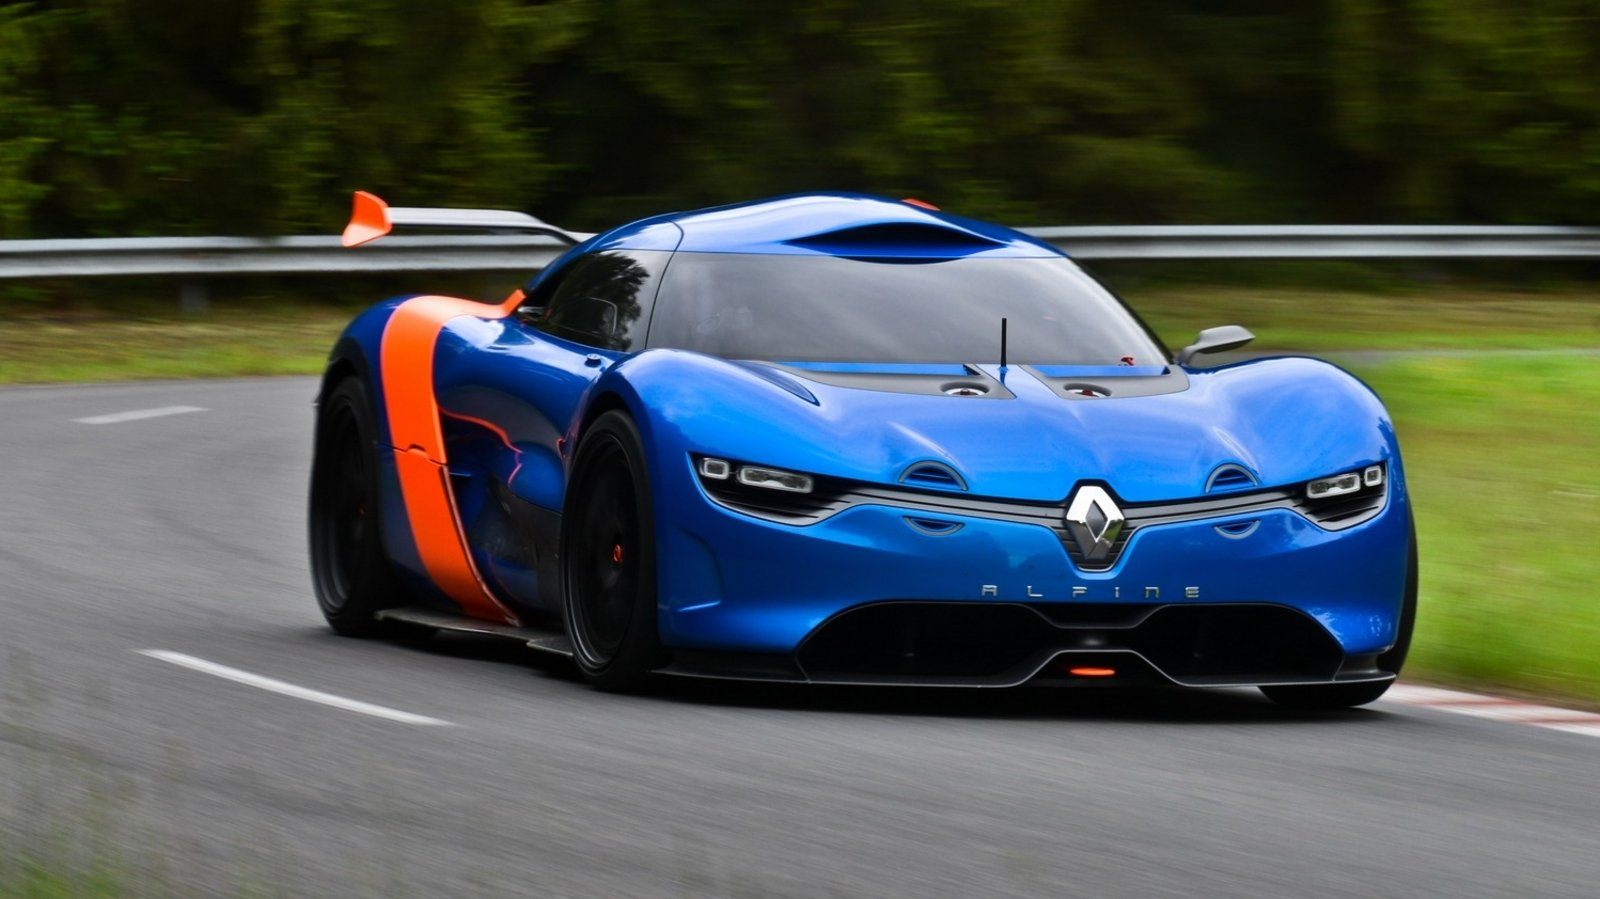 renault alpine confirmed coming in 2016 news top speed. Black Bedroom Furniture Sets. Home Design Ideas